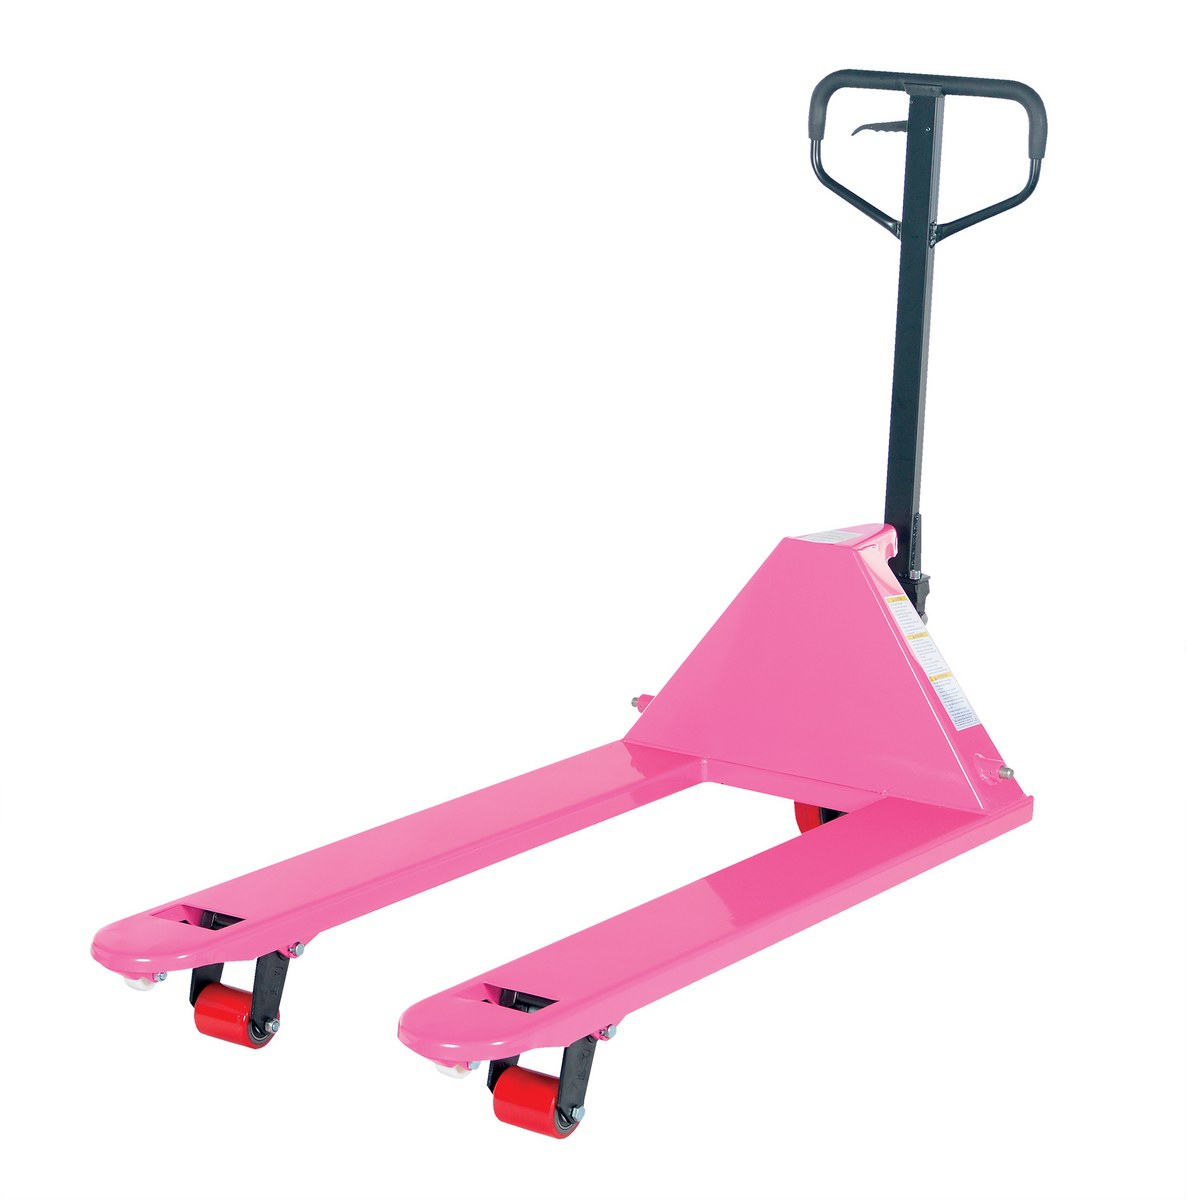 "PM5-2748-PINK Full Featured Deluxe Pink Pallet Jack 27""W x 48""L Forks"